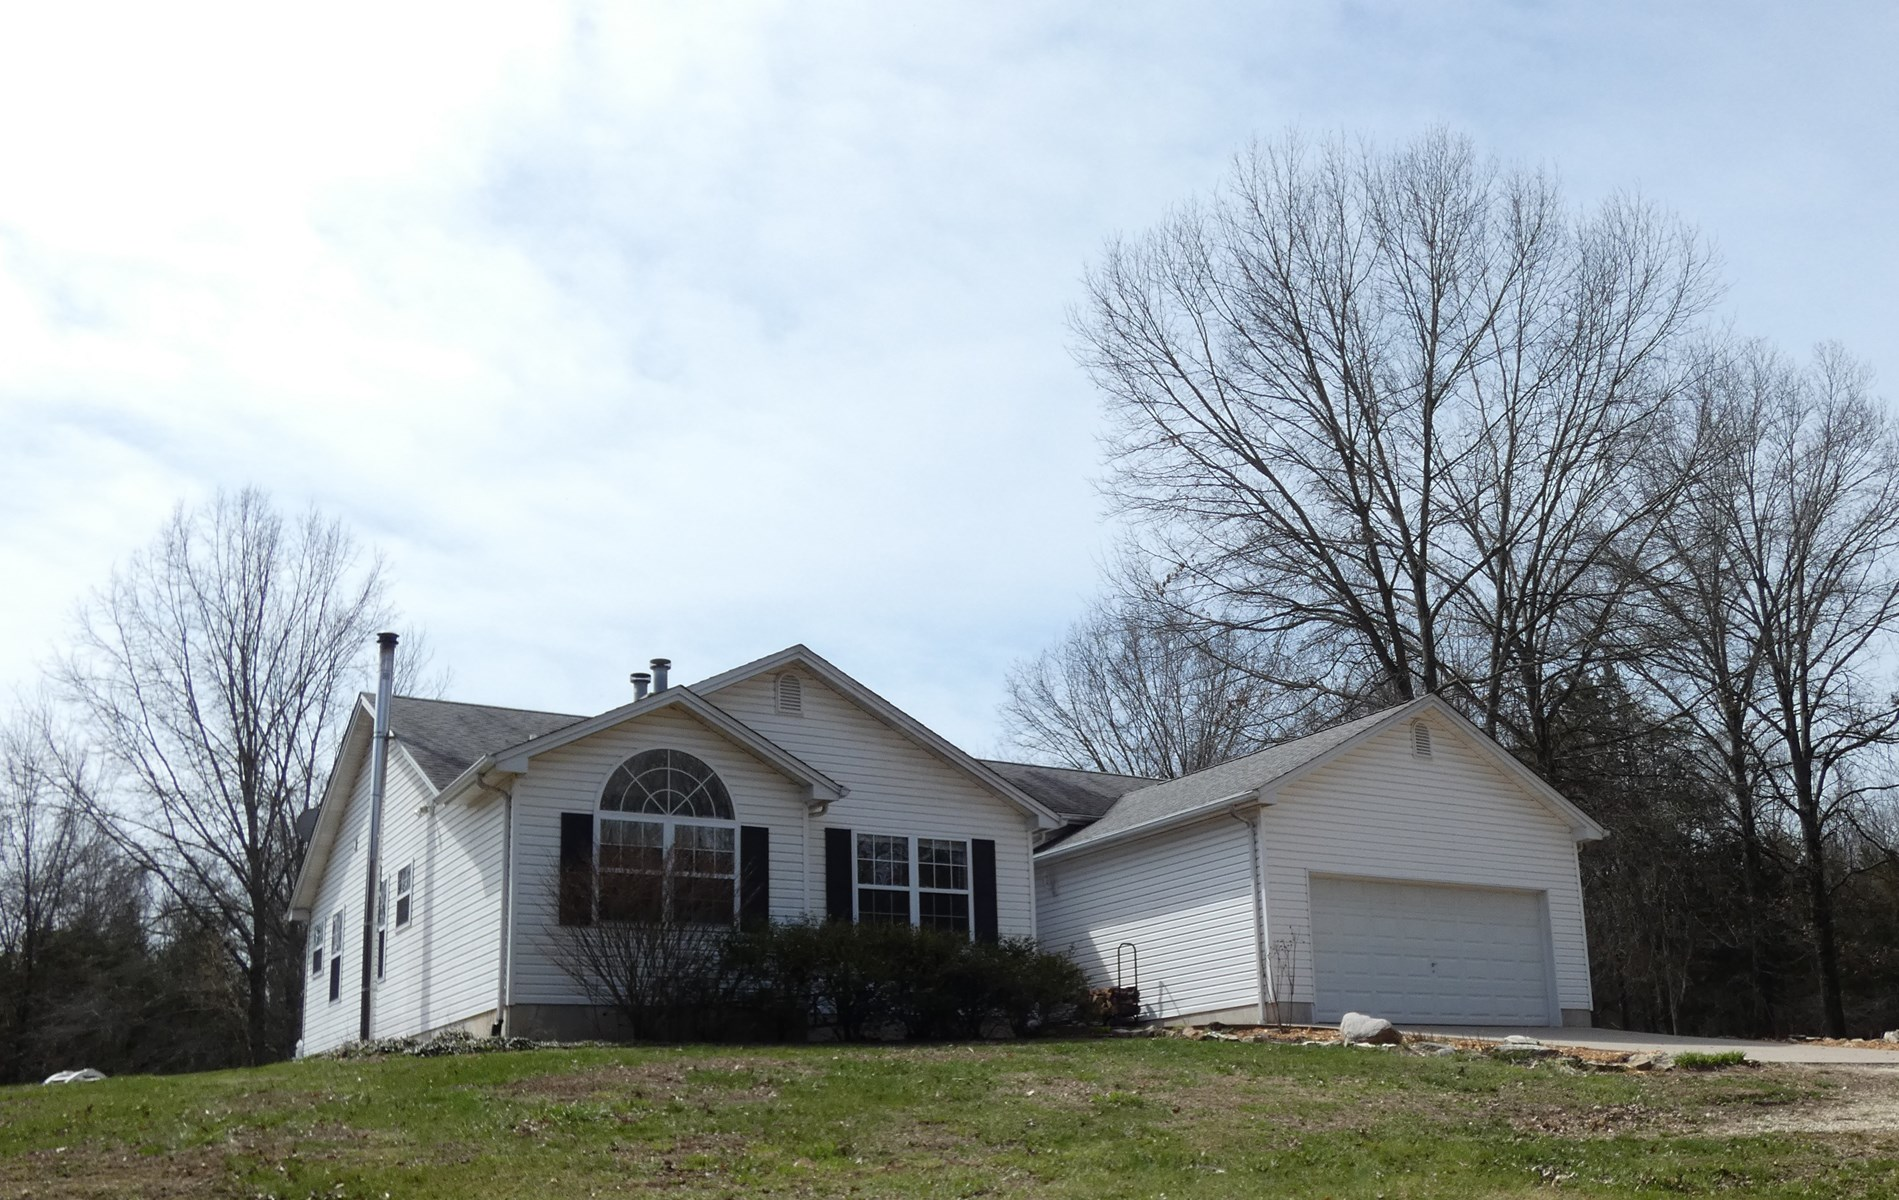 Hobby Farm, Wooded Recreation & Home For Sale in Hermann, MO